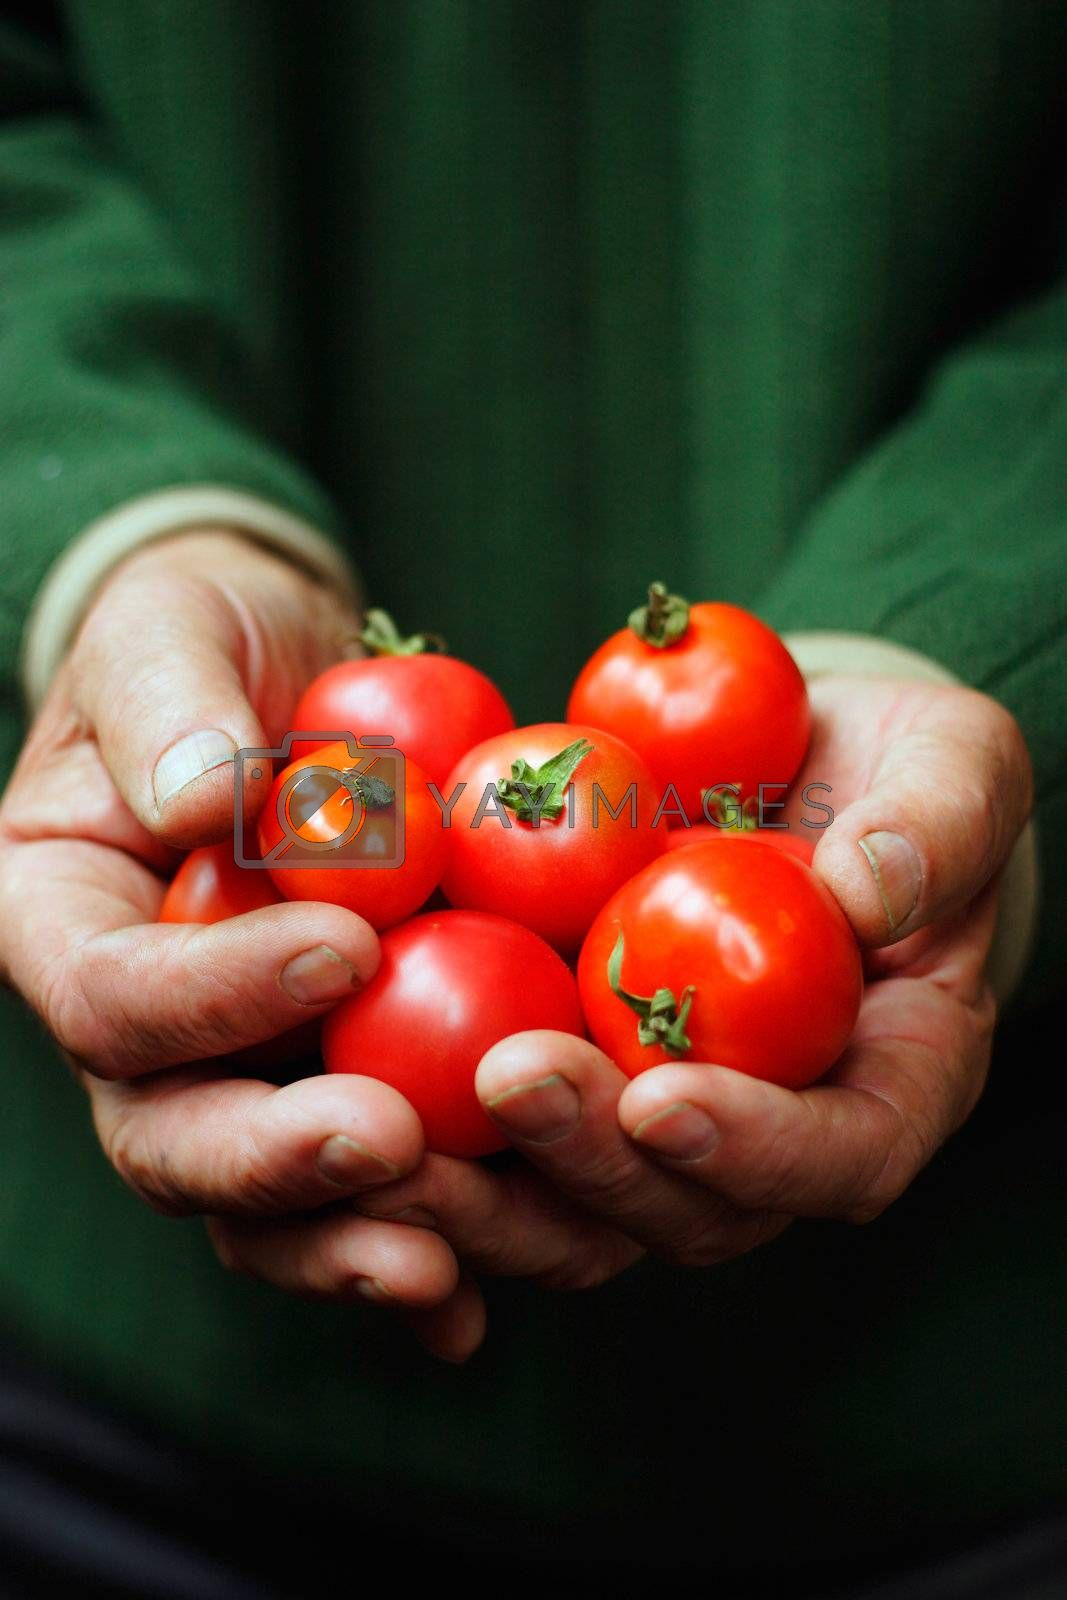 Tomatoes in hands of the old person.